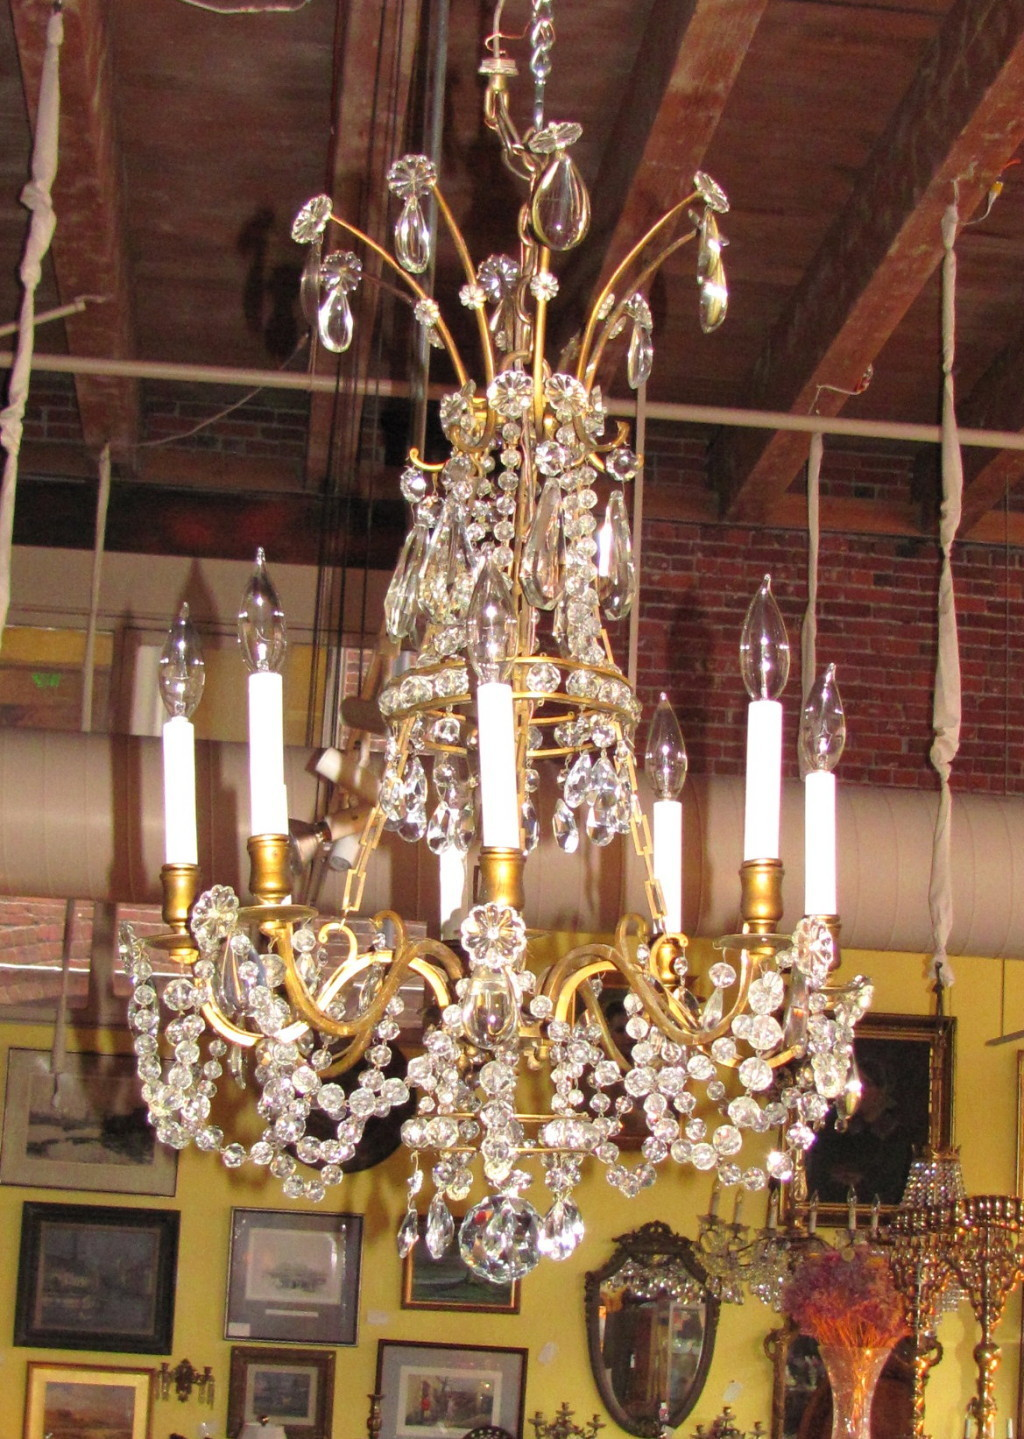 Roll over Large image to magnify, click Large image to zoom - Antique Victorian 8 Light Crystal Chandelier Circa 1880 From